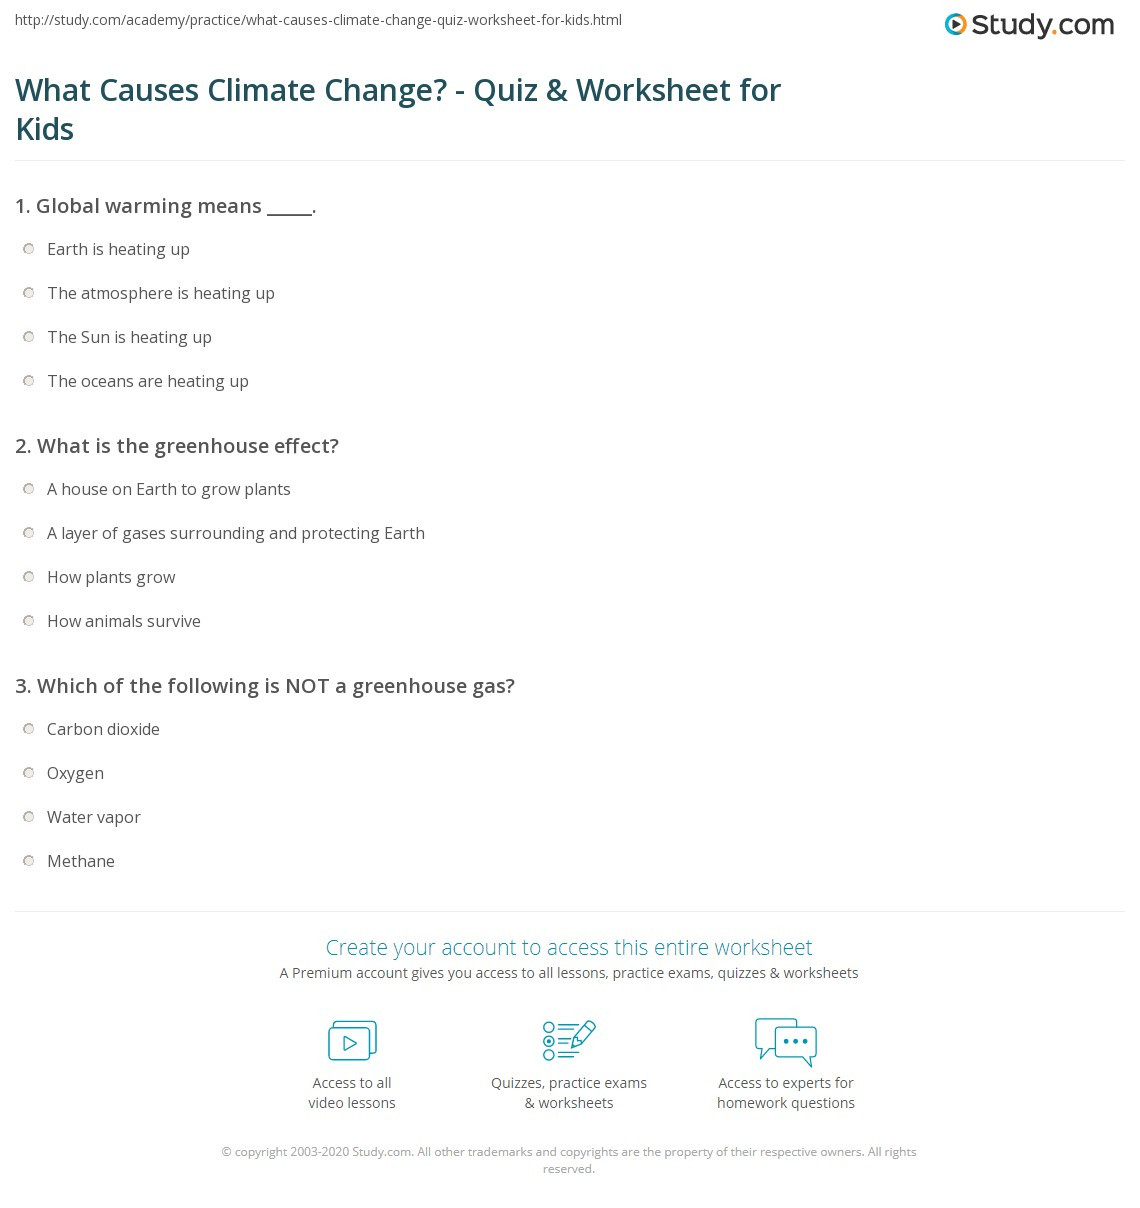 Greenhouse Effect Worksheet High School What Causes Climate Change Quiz & Worksheet for Kids